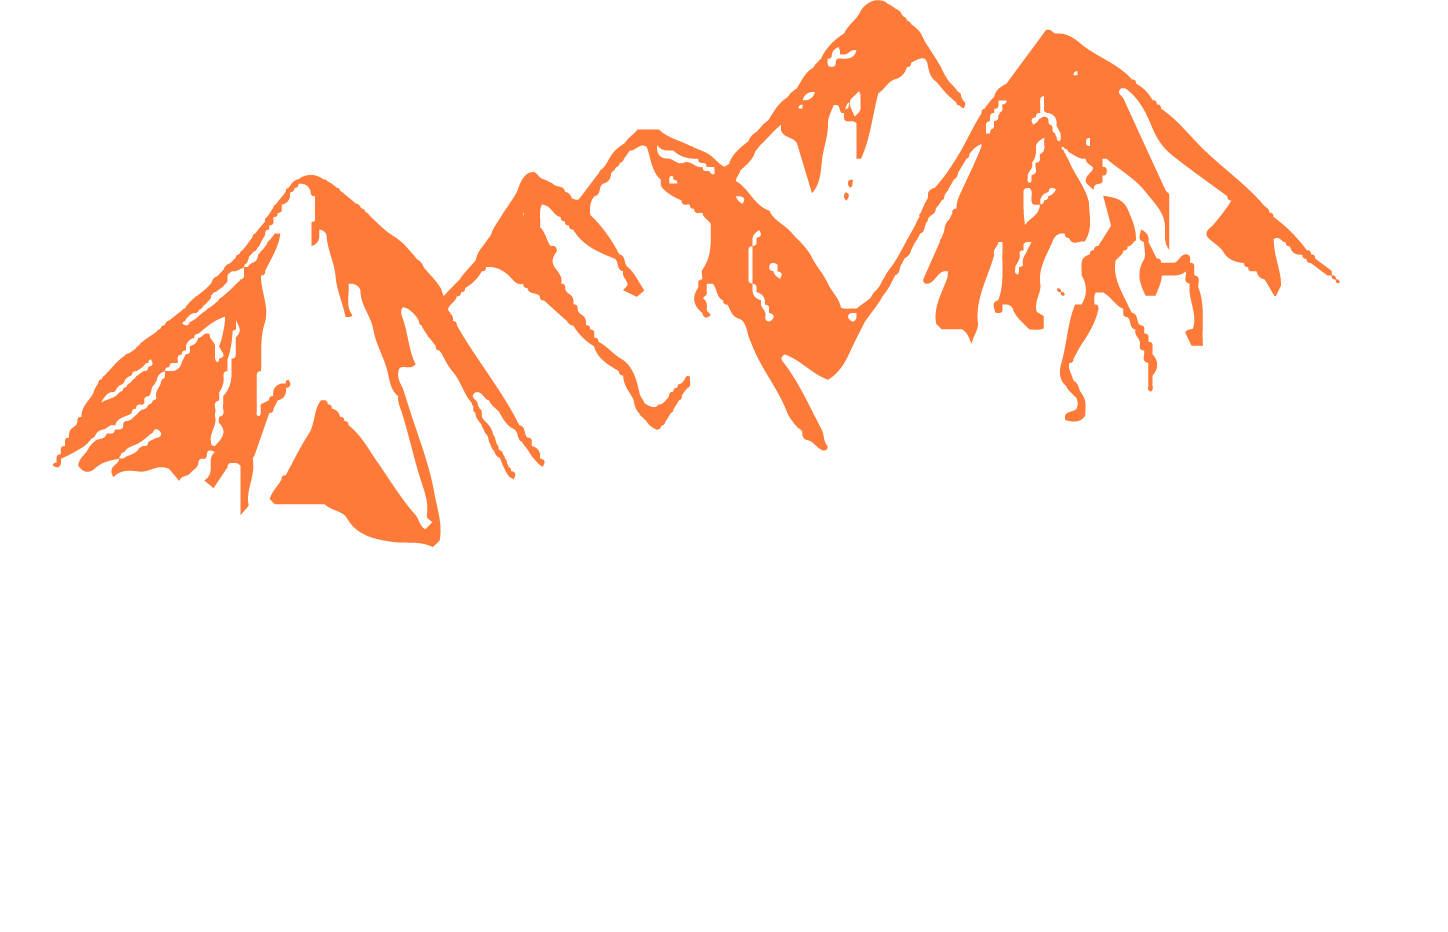 Suzette Wasvick Counseling Services